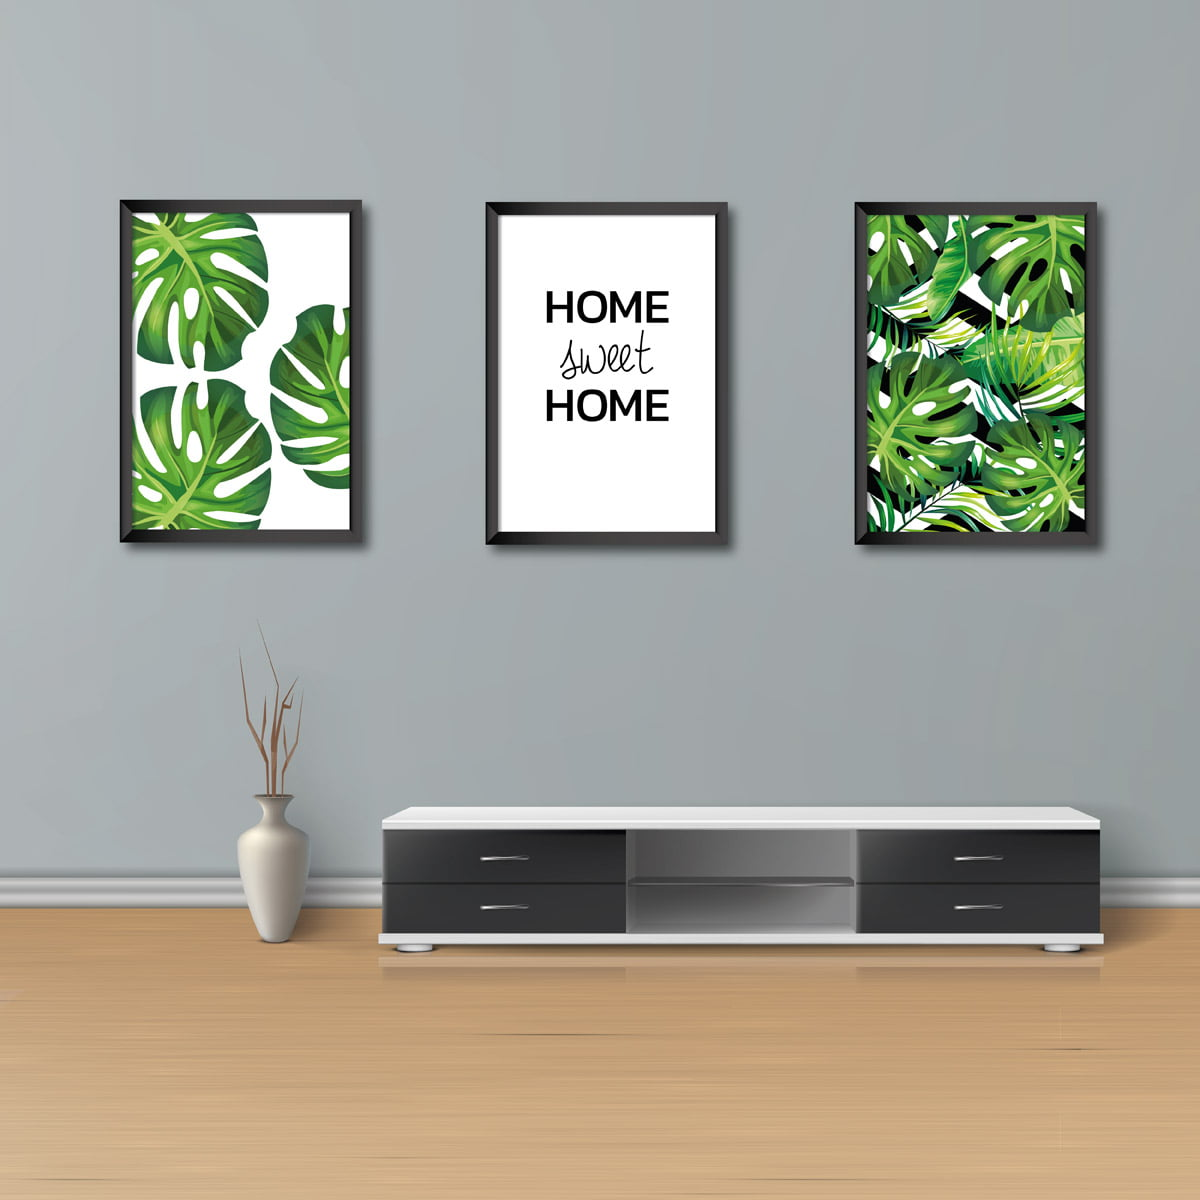 Kit Conjunto 3  Quadros Decorativos Home Swet Home 20X30